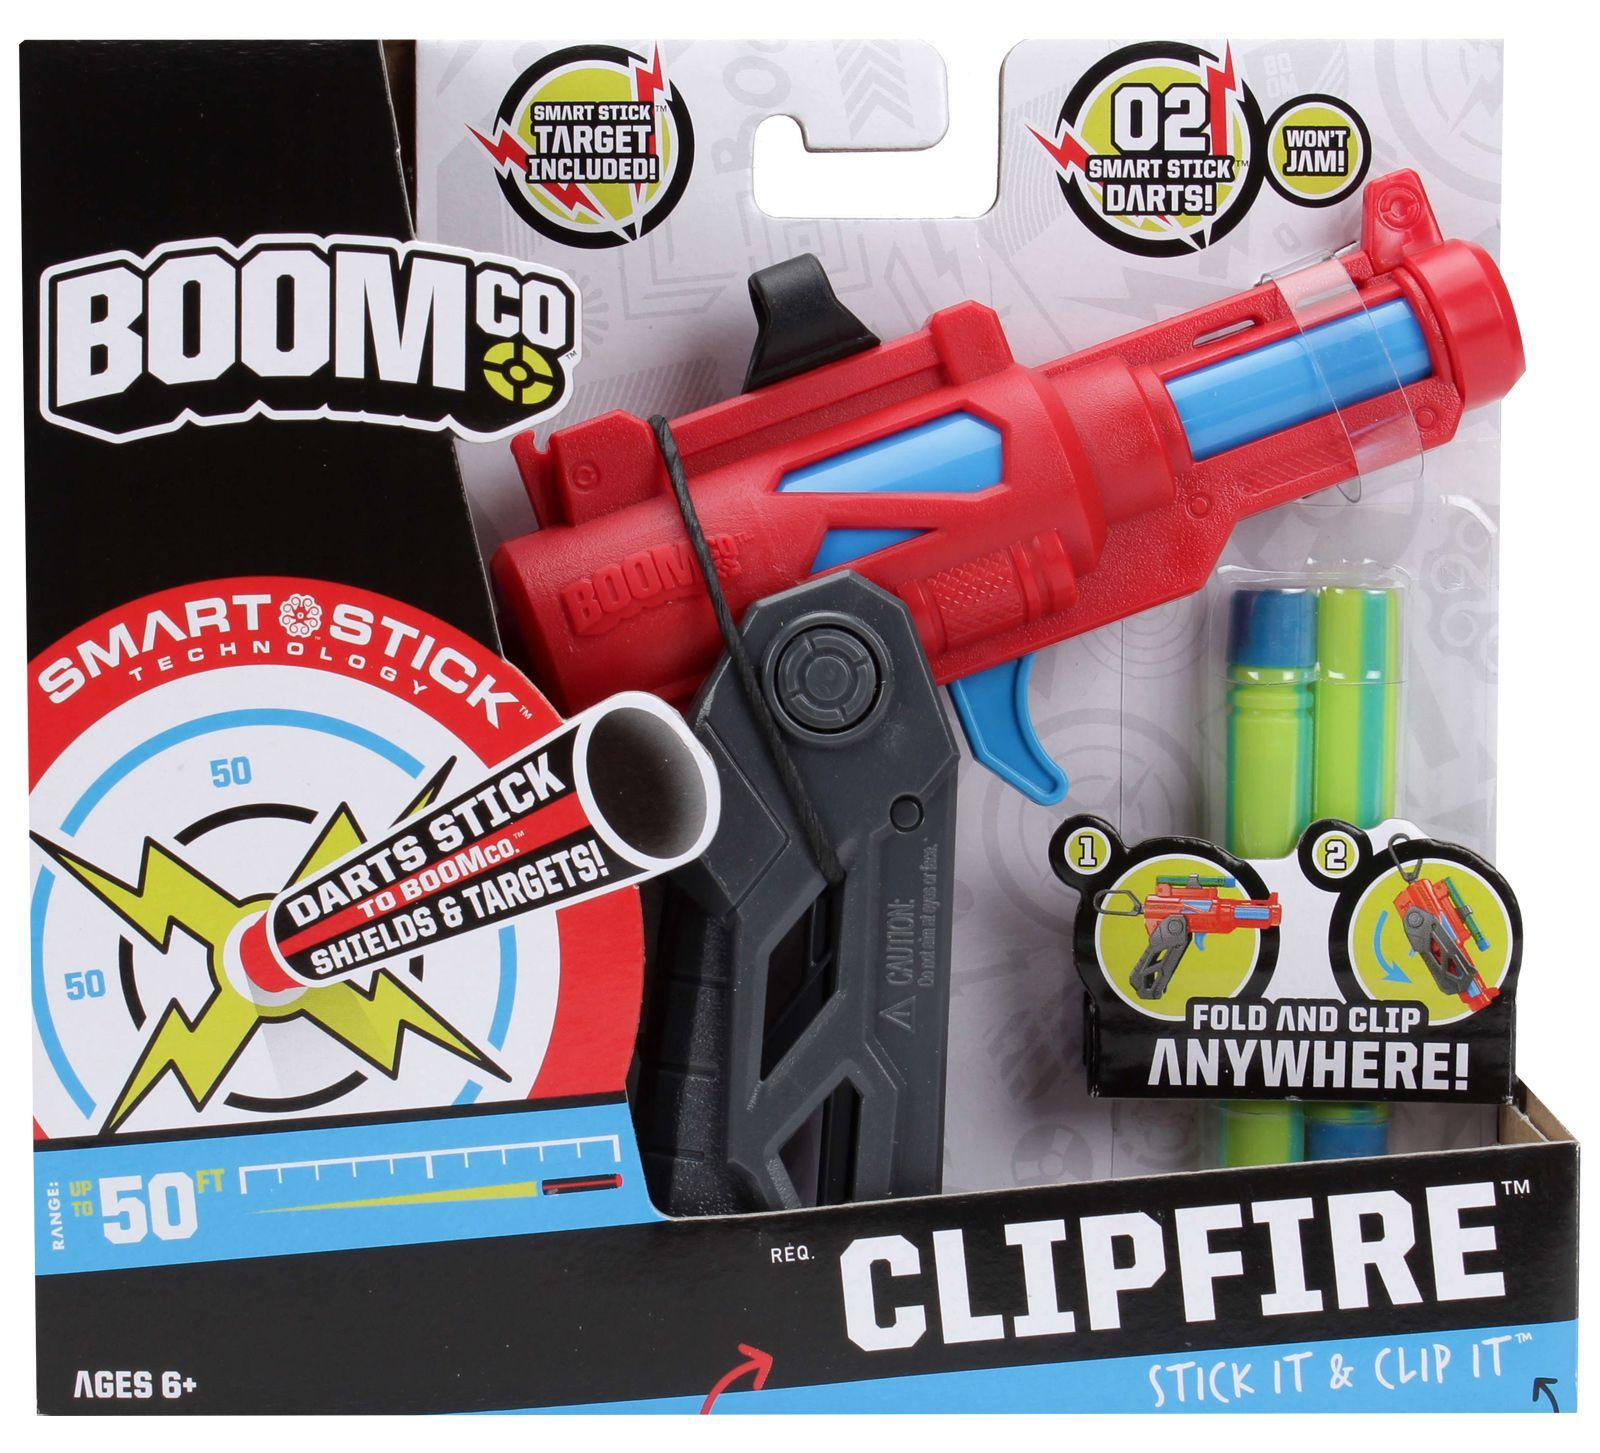 Boomco Clipfire Blaster Online India, Buy Toy Guns for (6-12 Years ...